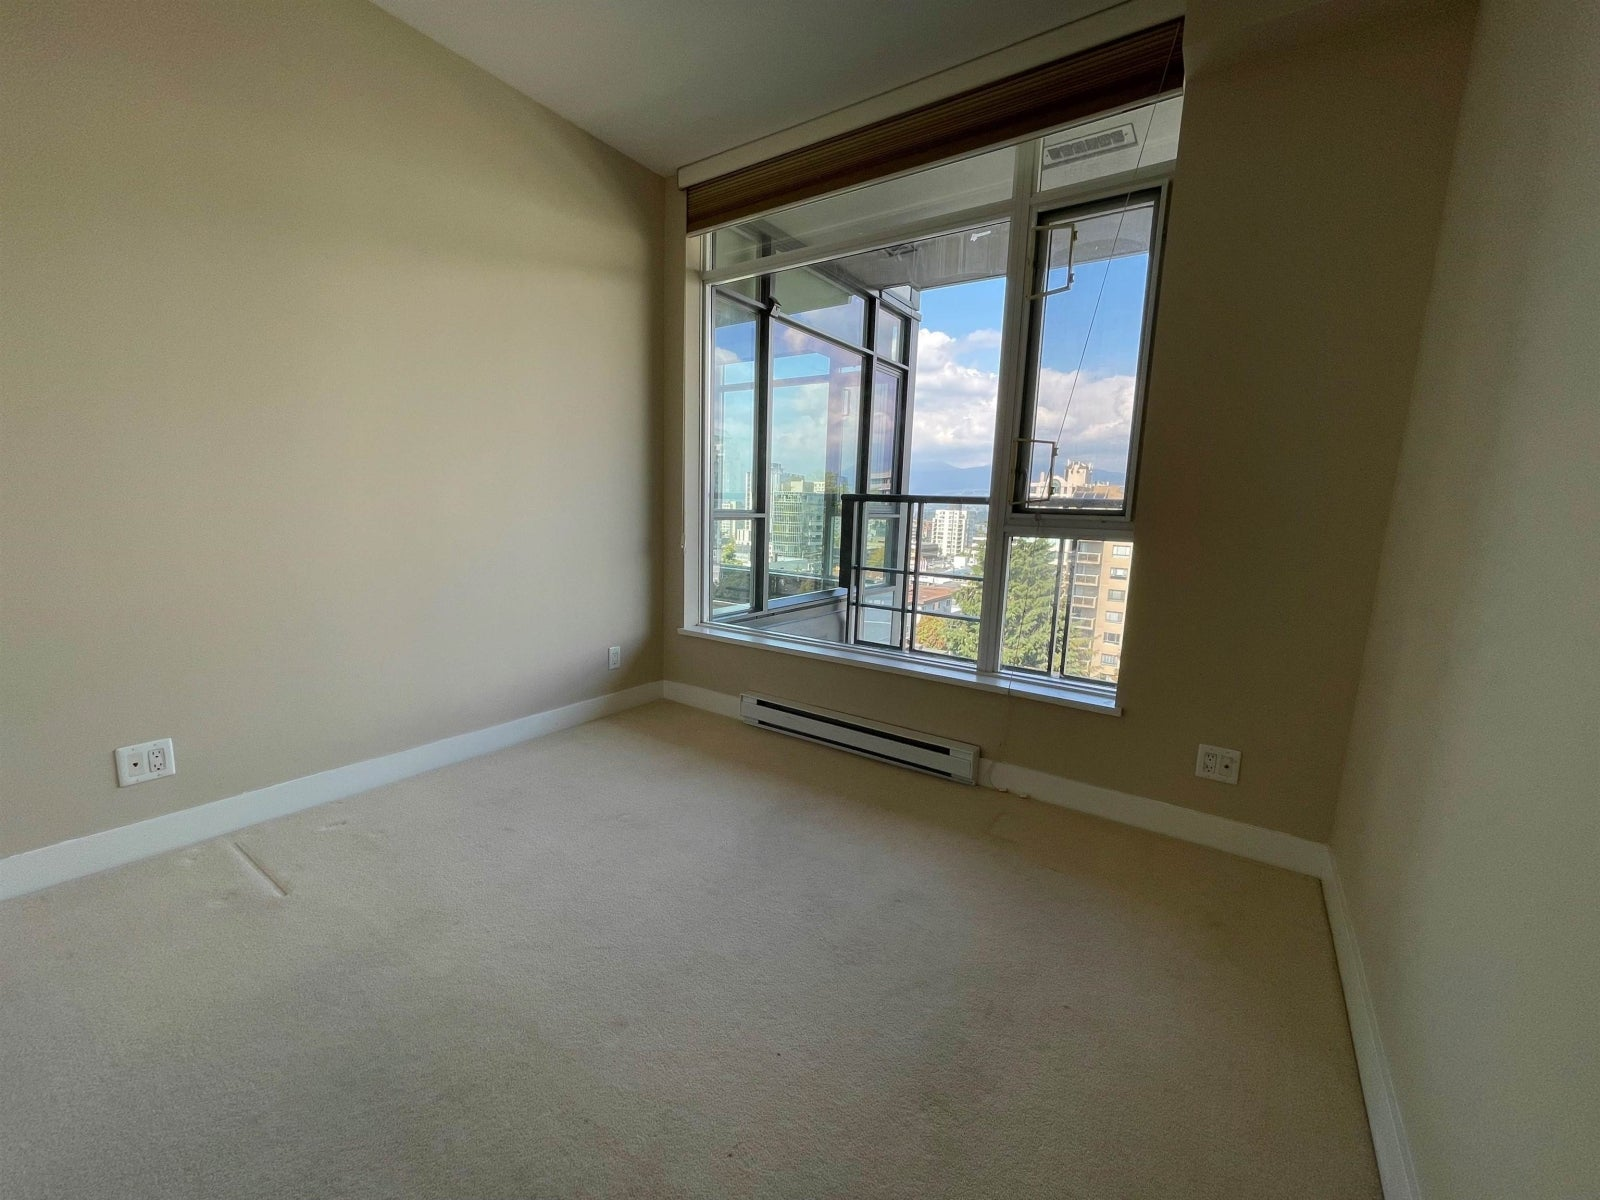 803 1333 W 11TH AVENUE - Fairview VW Apartment/Condo for sale, 2 Bedrooms (R2616288) #26